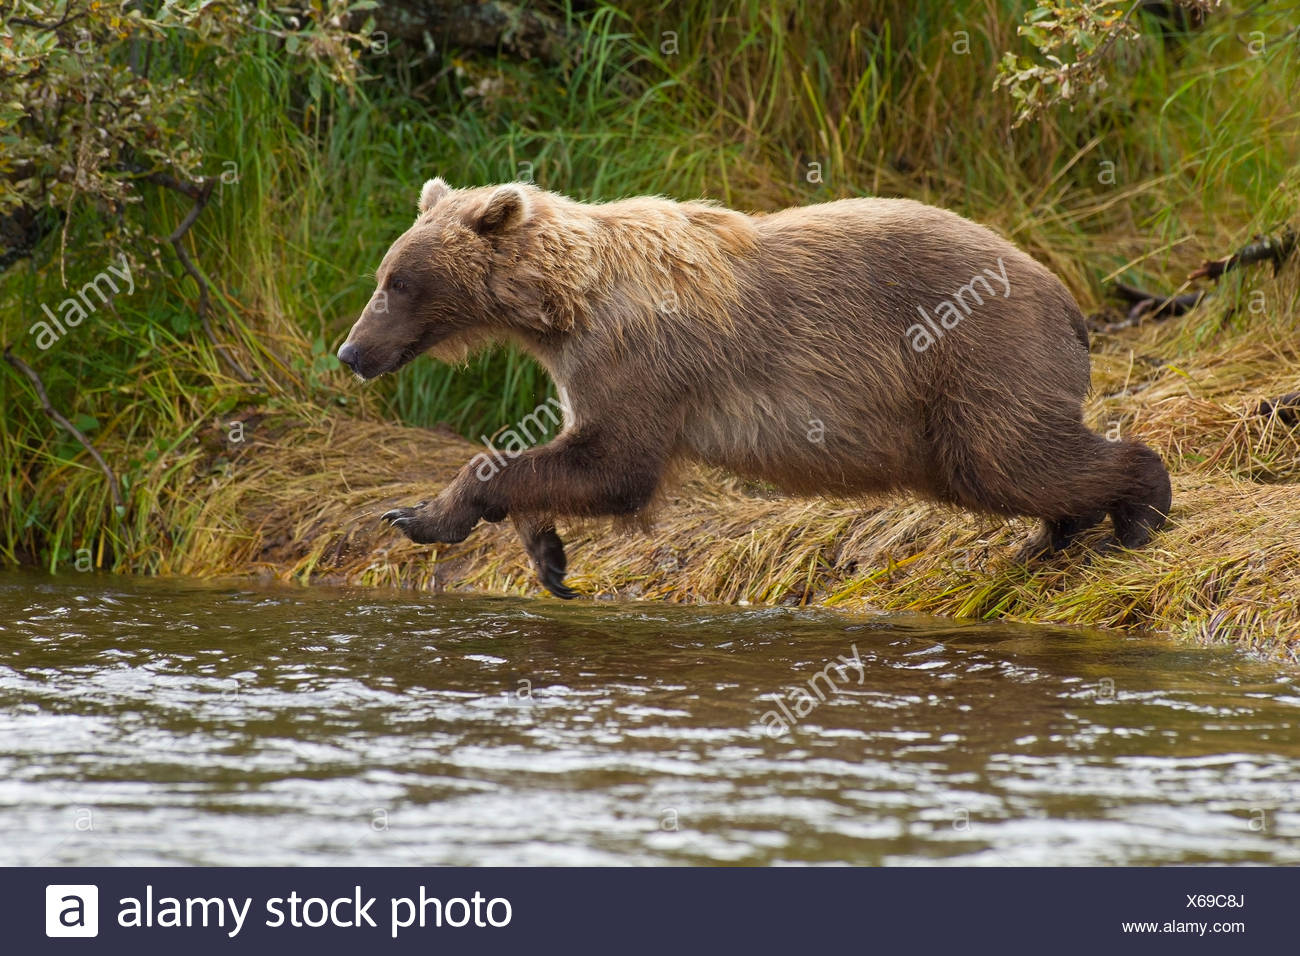 A Brown bear jumps from the streambank into Grizzly Creek to fish for Sockeye salmon, Katmai National Park, Alaska Stock Photo